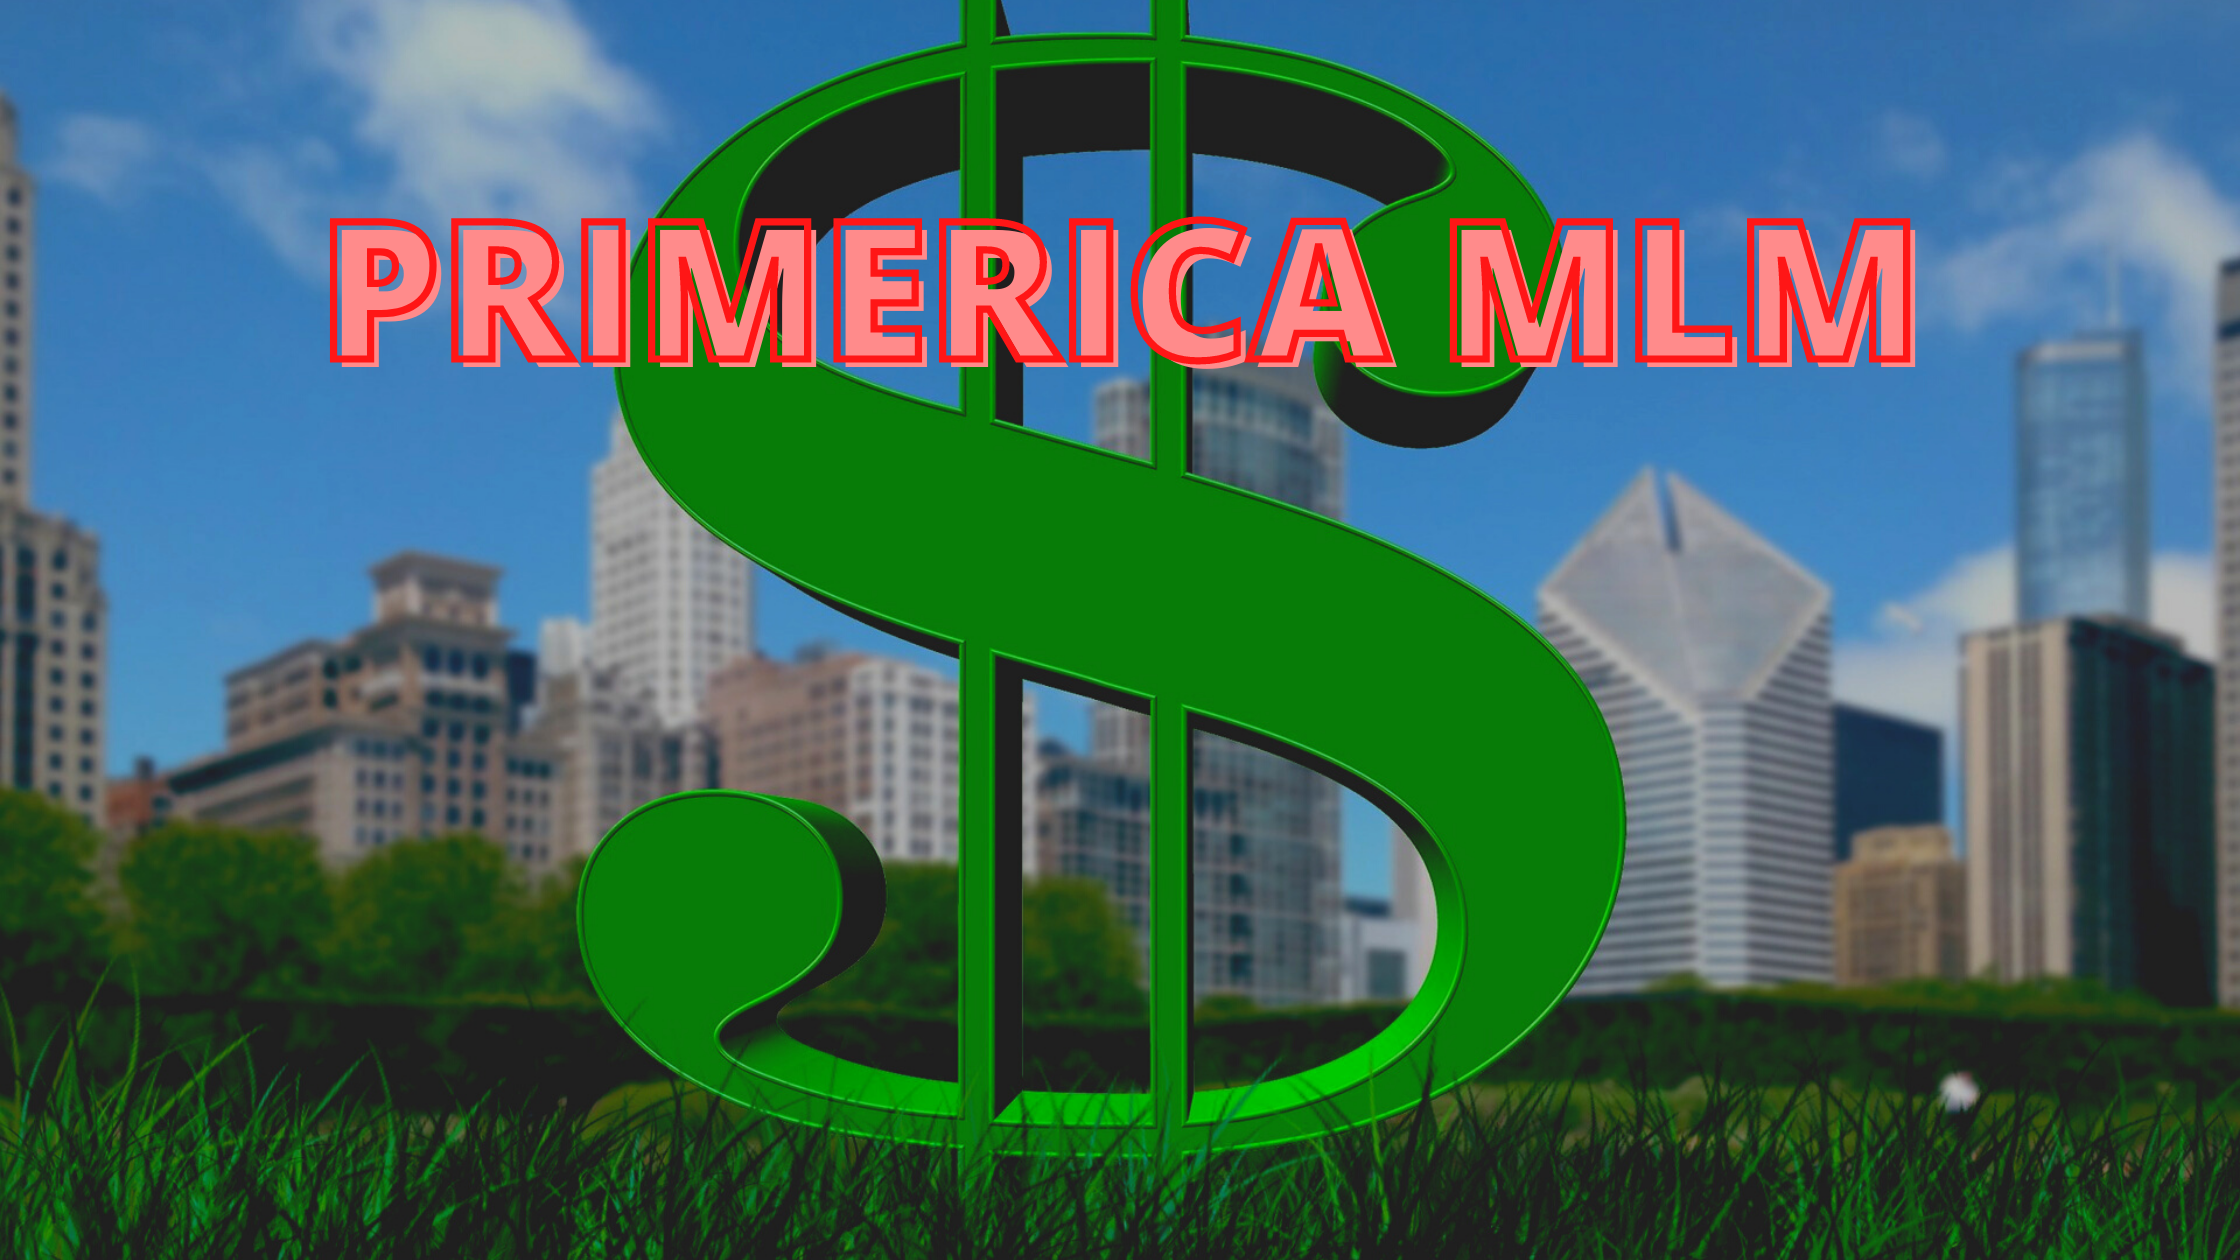 What is Primerica MLM